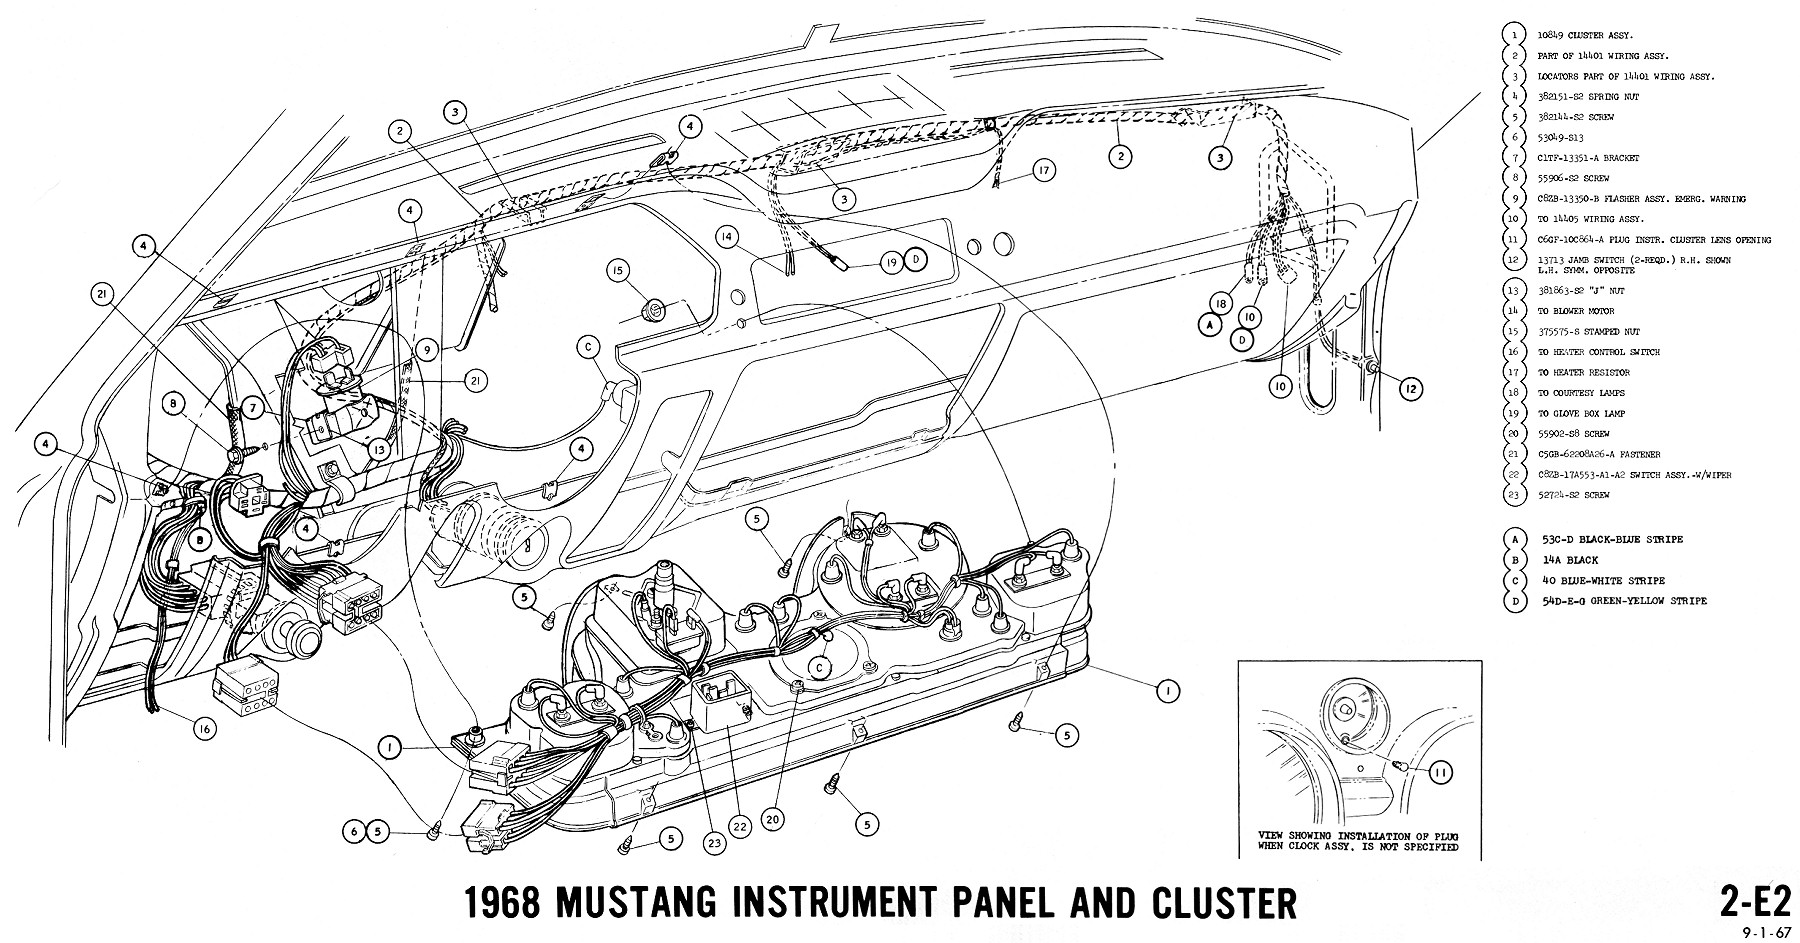 1968 mustang wiring diagram instruments 2 1969 mustang dash wiring diagram 1969 mustang wiring routing 1967 mustang instrument cluster wiring diagram at sewacar.co